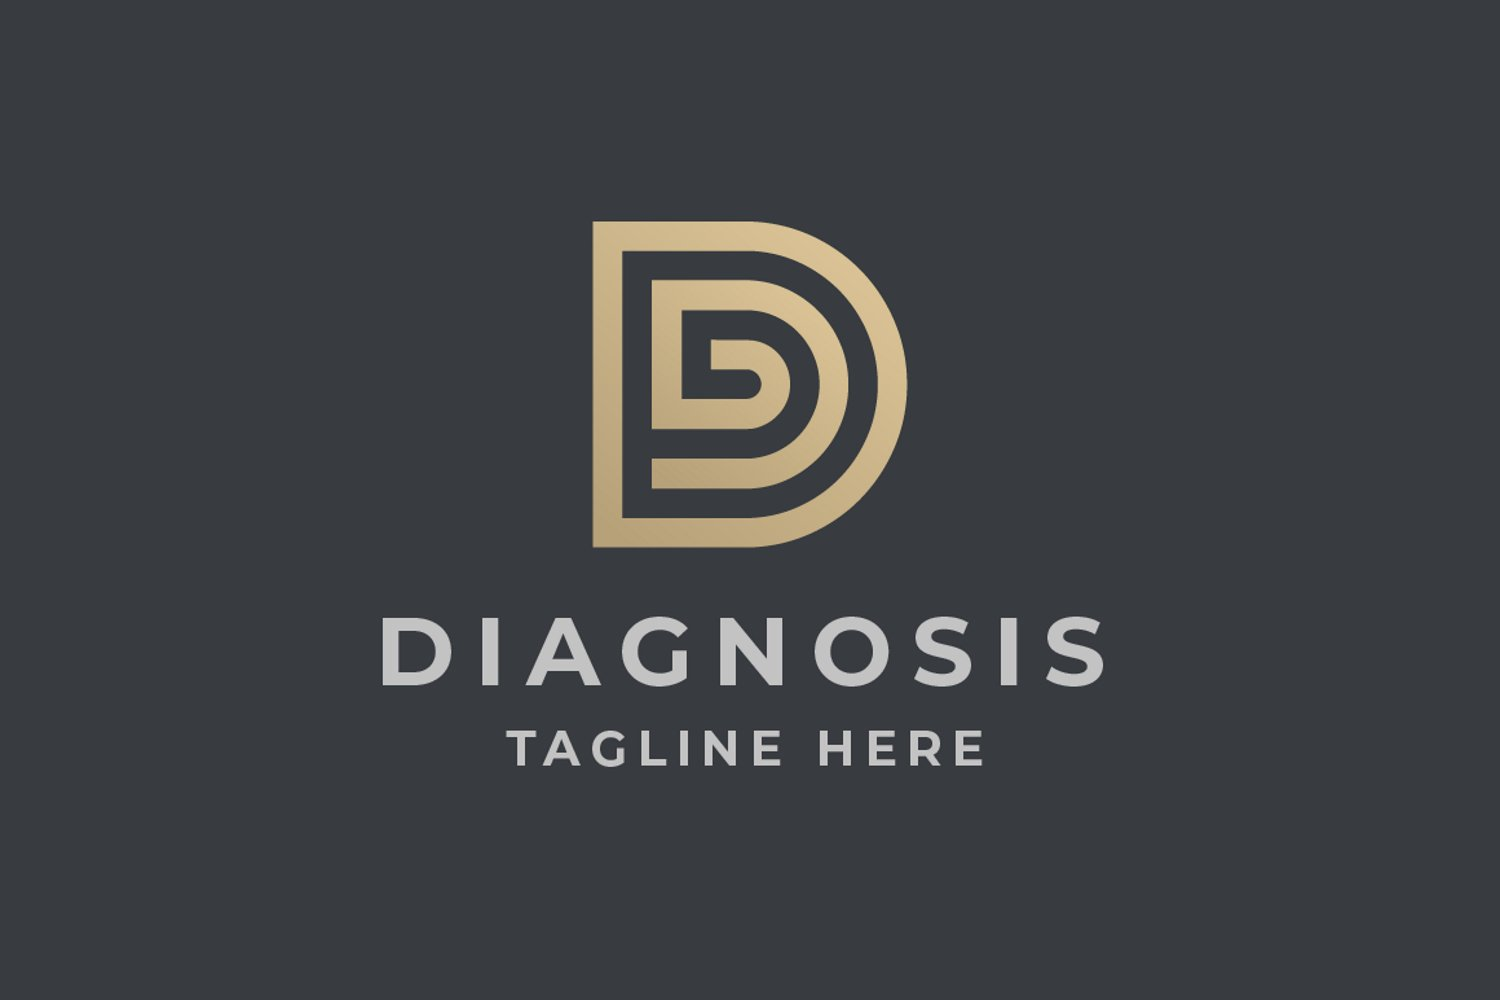 Diagnosis Letter D Logo example image 1